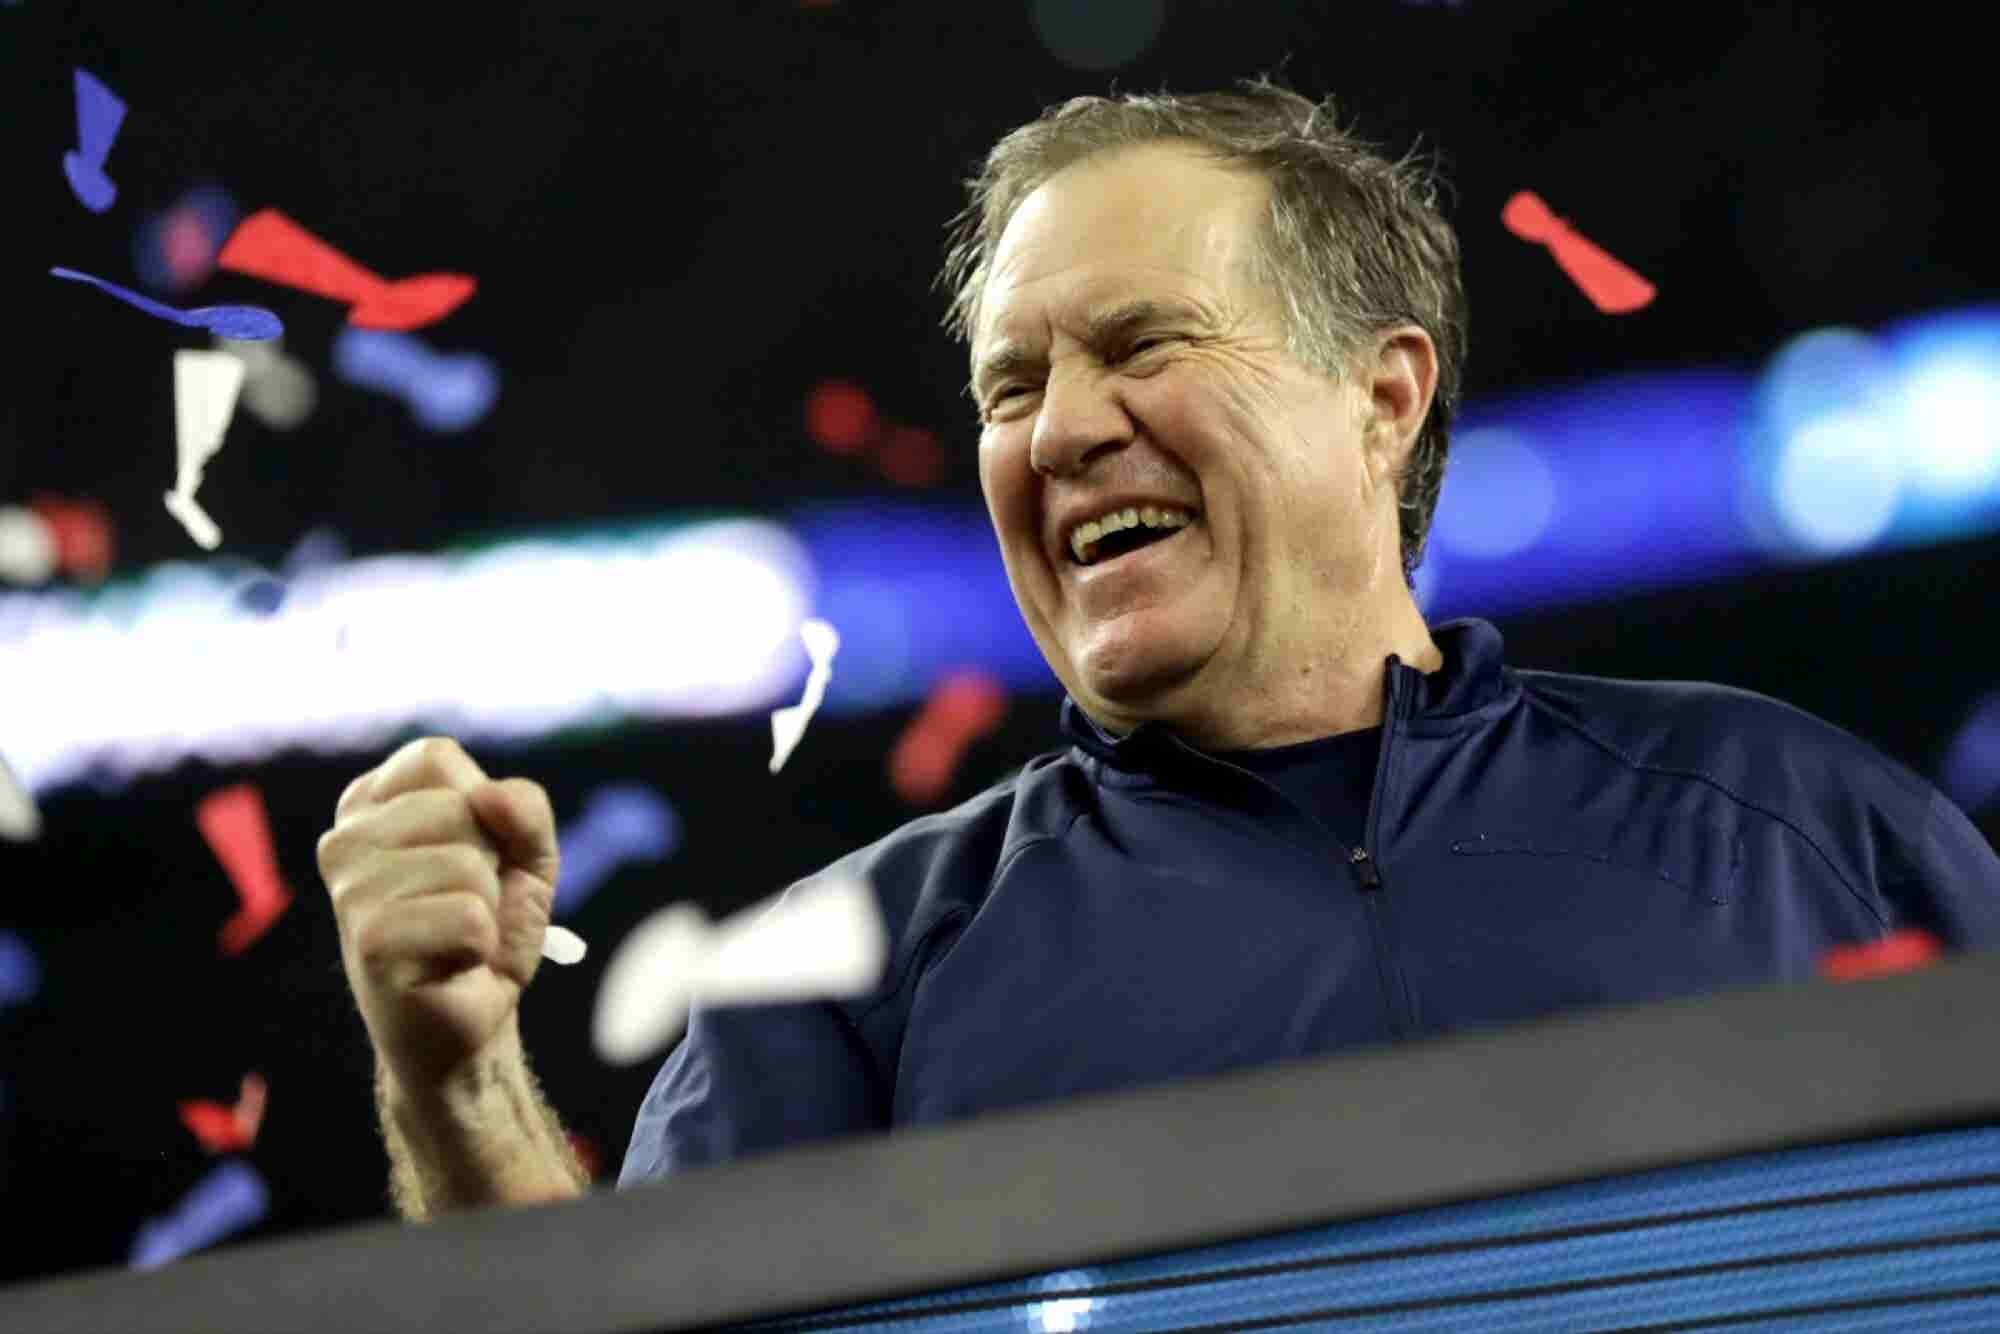 5 Ways to Shift the Momentum of Your Business Like Bill Belichick or John Wooden